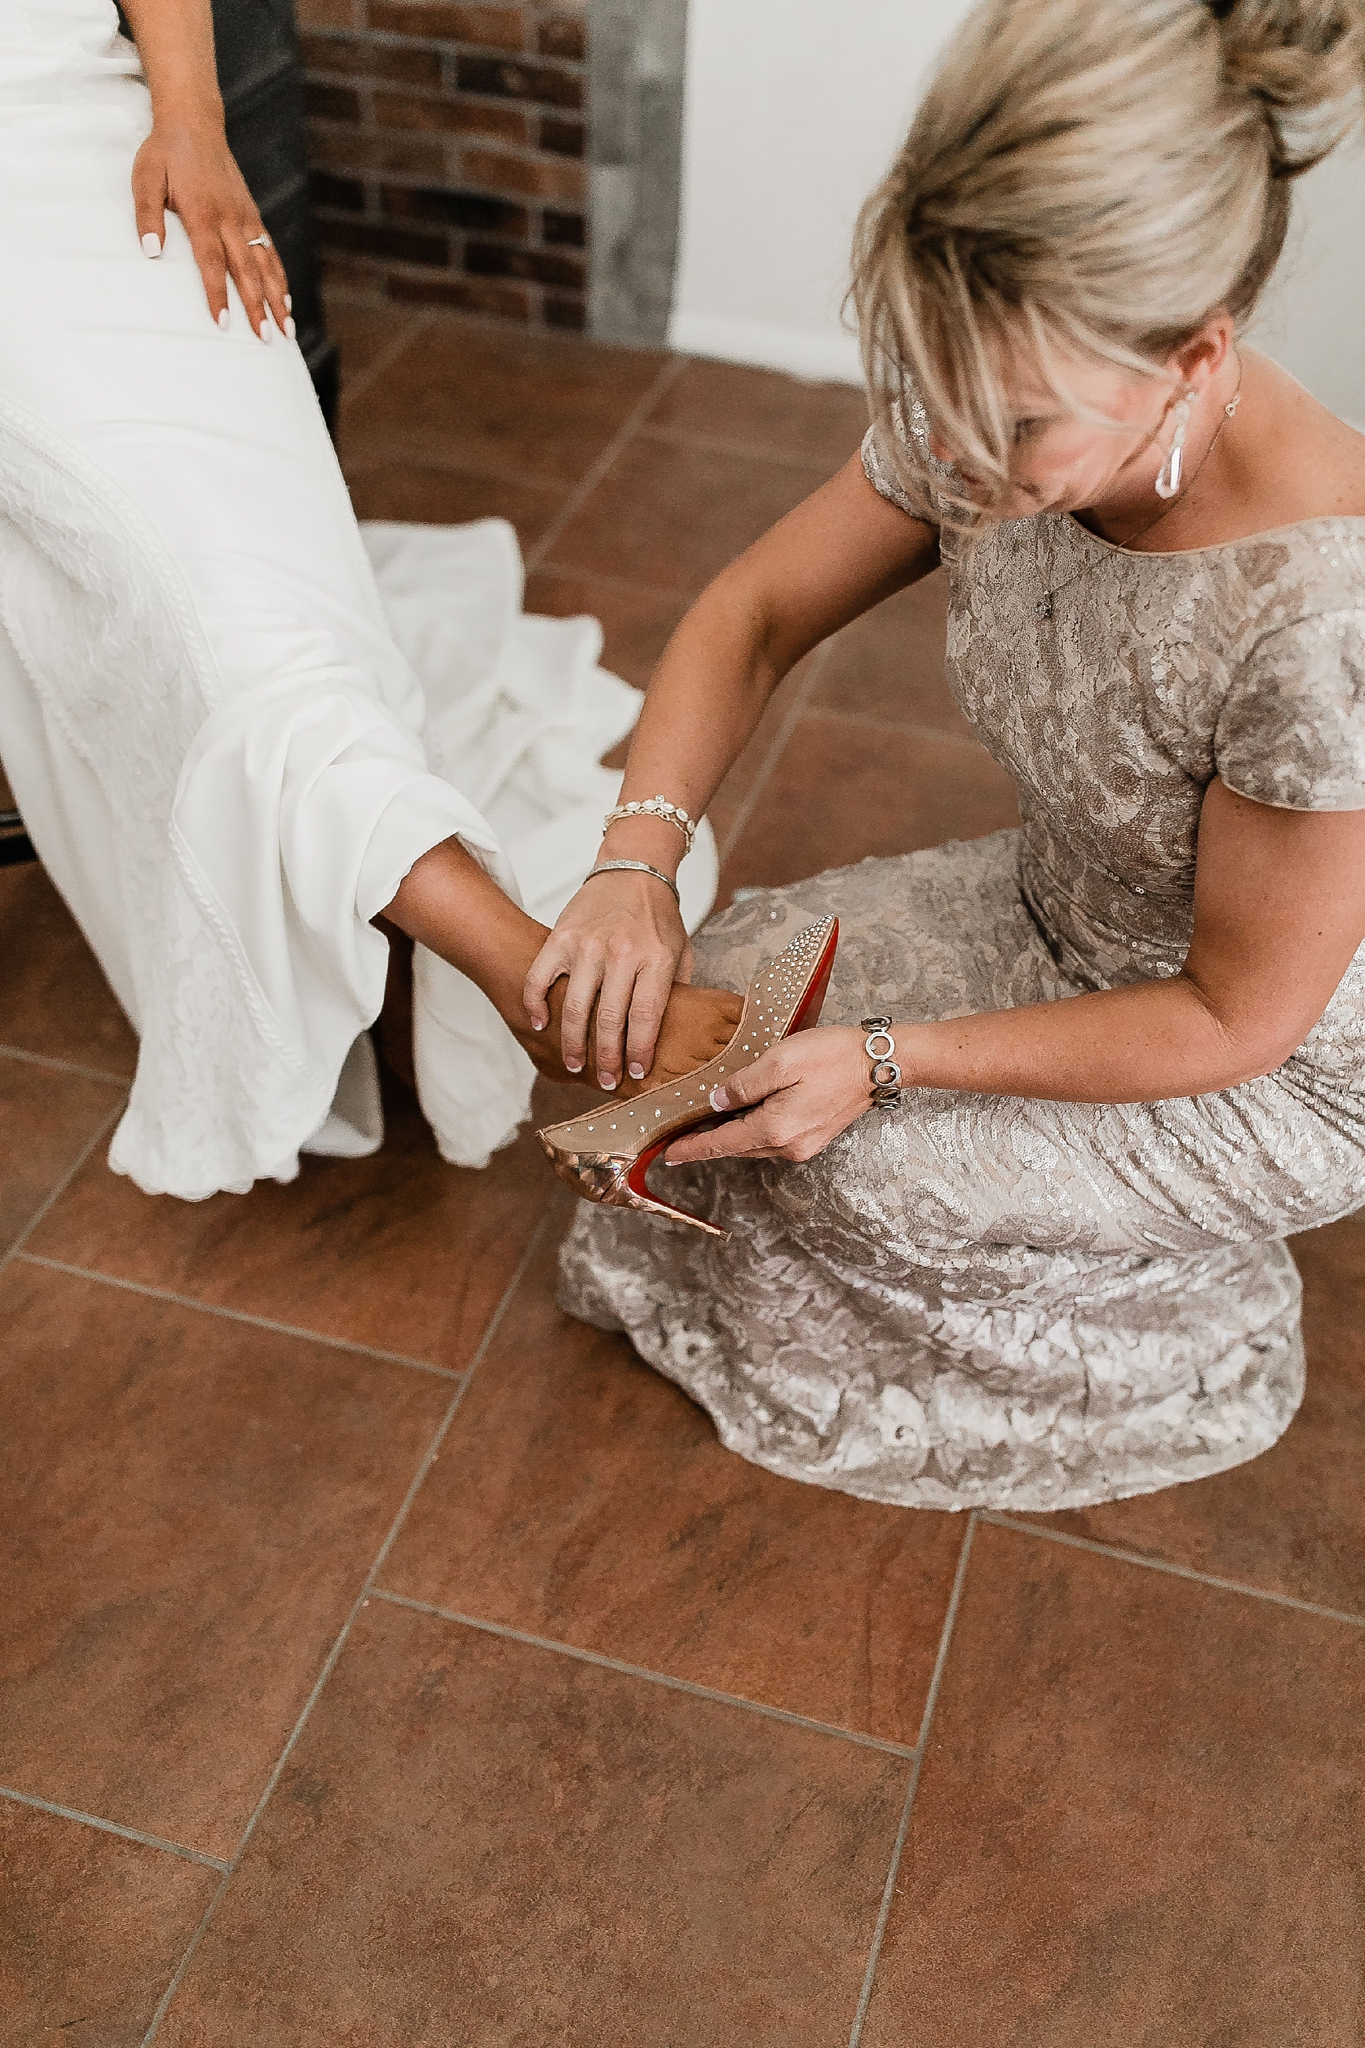 Alicia+lucia+photography+-+albuquerque+wedding+photographer+-+santa+fe+wedding+photography+-+new+mexico+wedding+photographer+-+new+mexico+wedding+-+new+mexico+wedding+-+colorado+wedding+-+bridal+shoes+-+bridal+inspo_0004.jpg